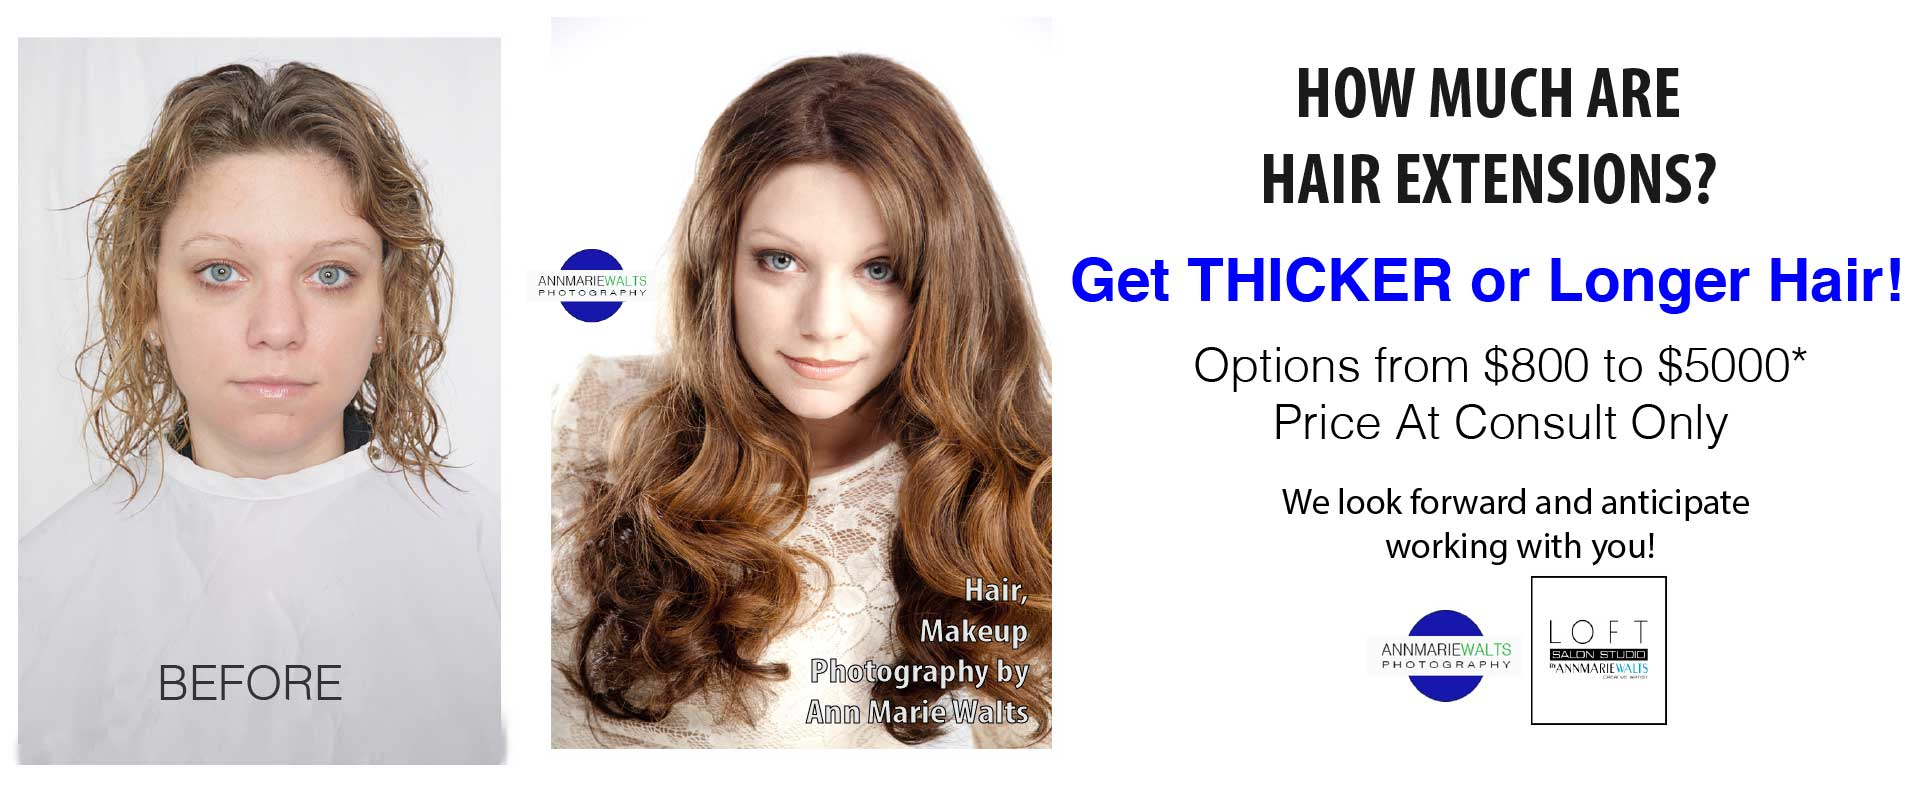 How Much Do Hair Extensions Cost In A Salon l Certified ...